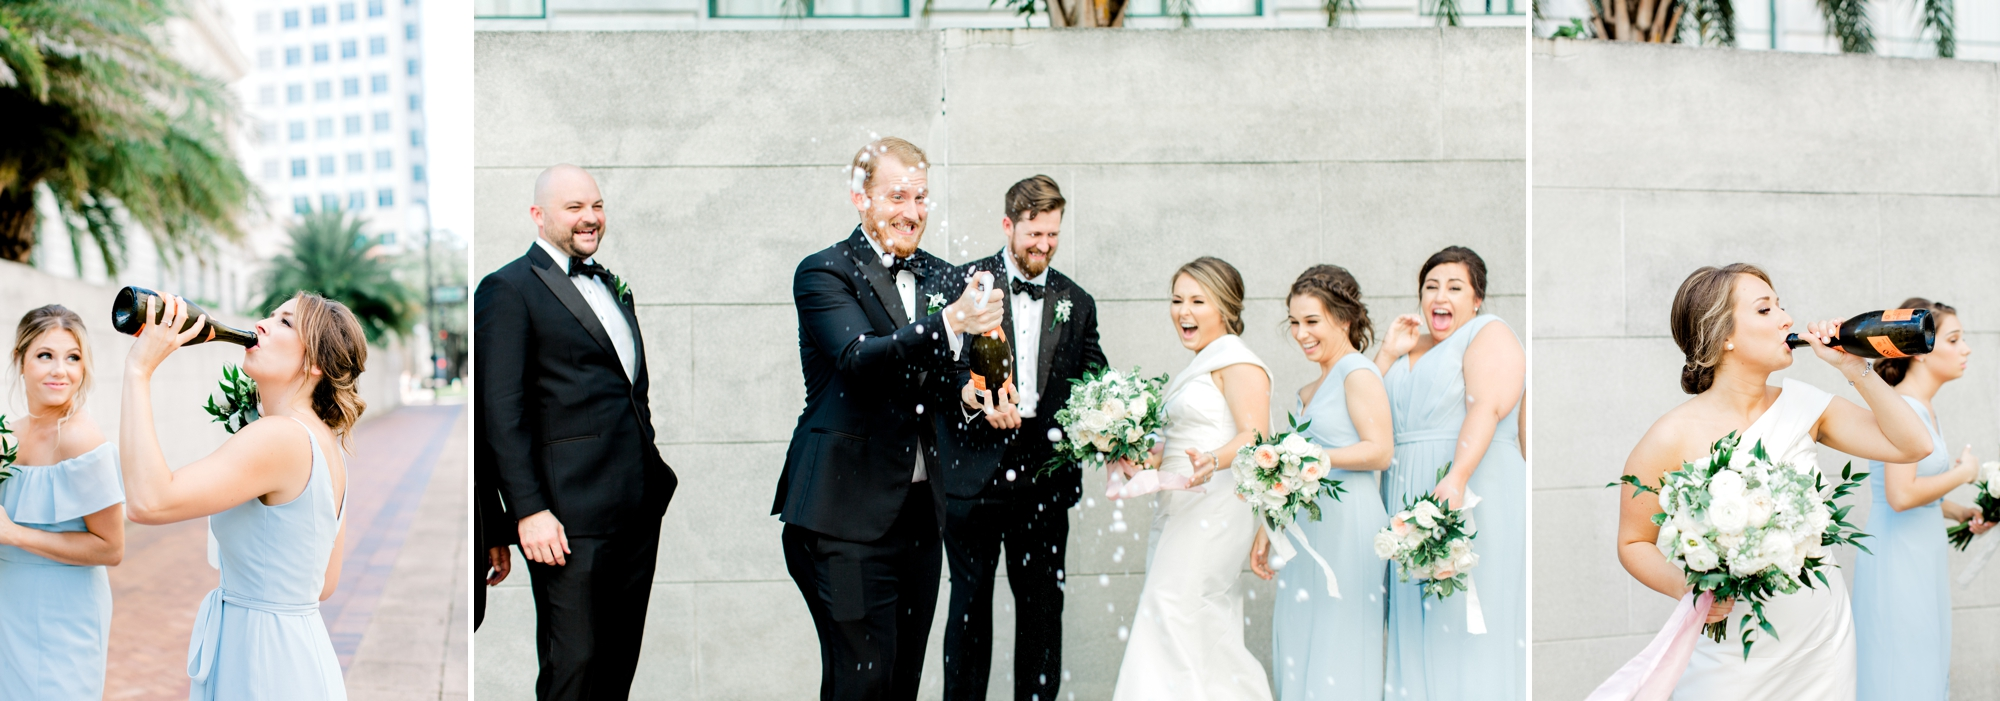 wedding party drinking champagne out of the bottle